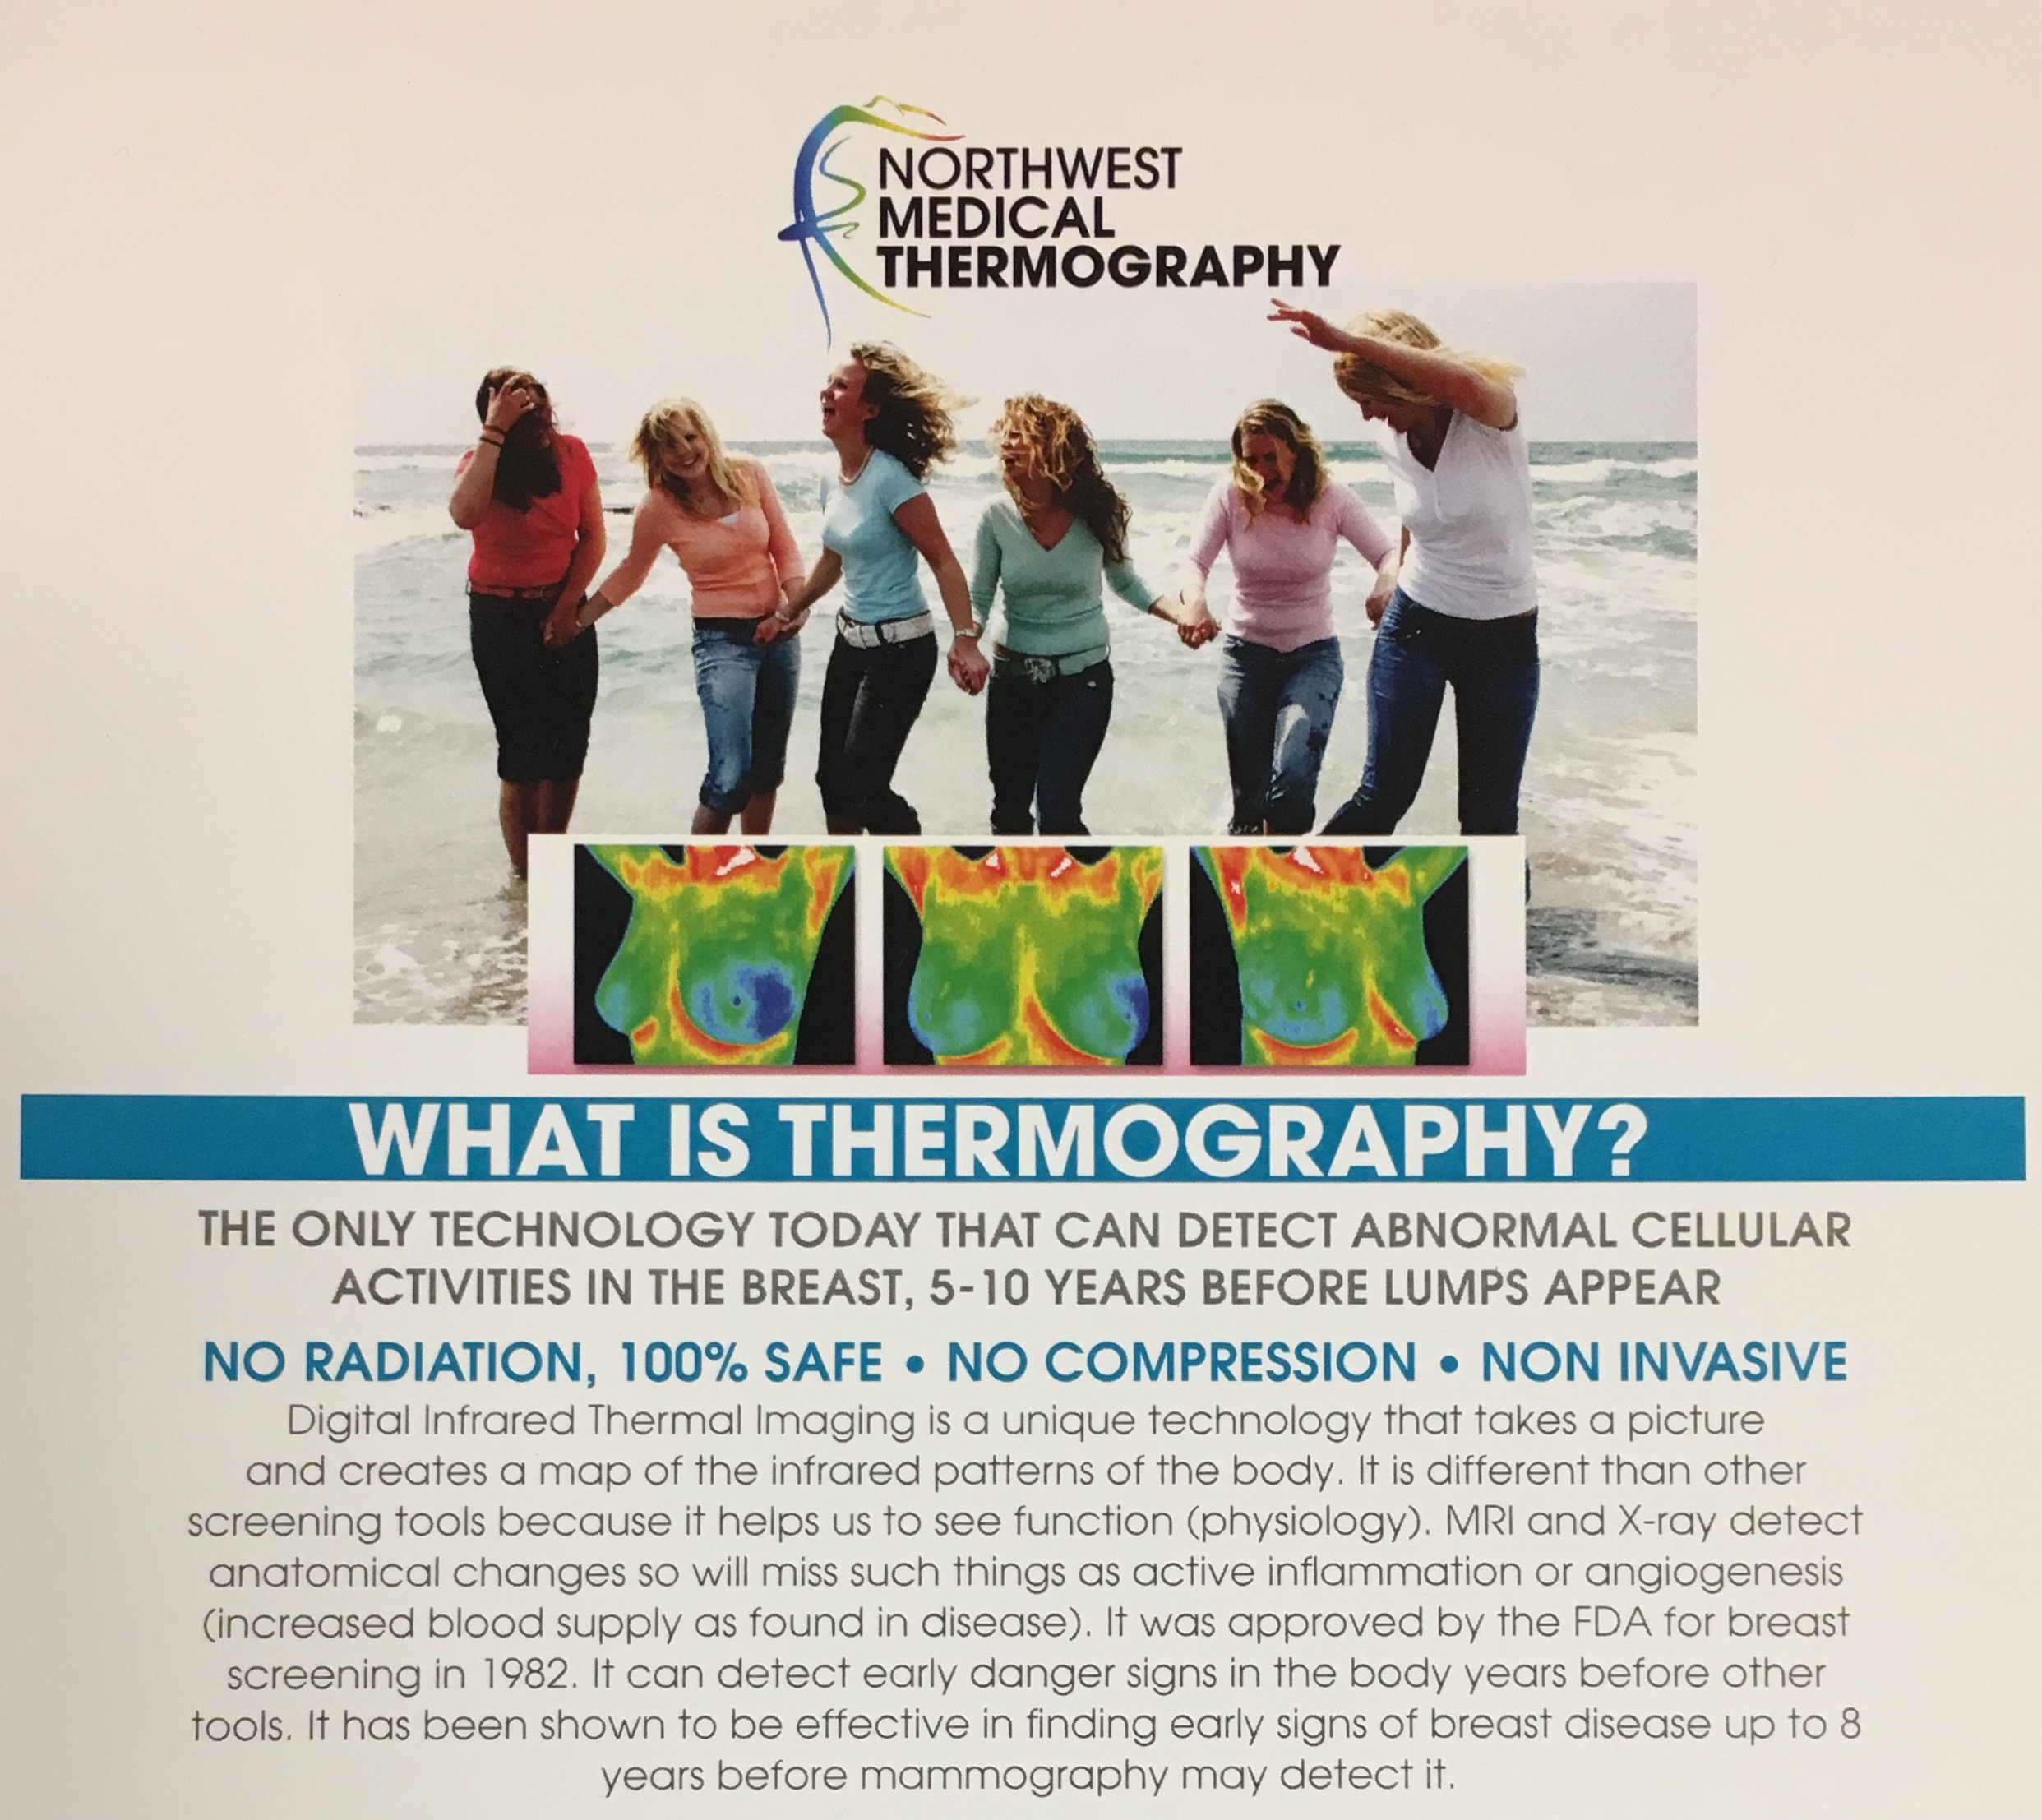 Northwest Medical Thermography at North Point Chiropractic